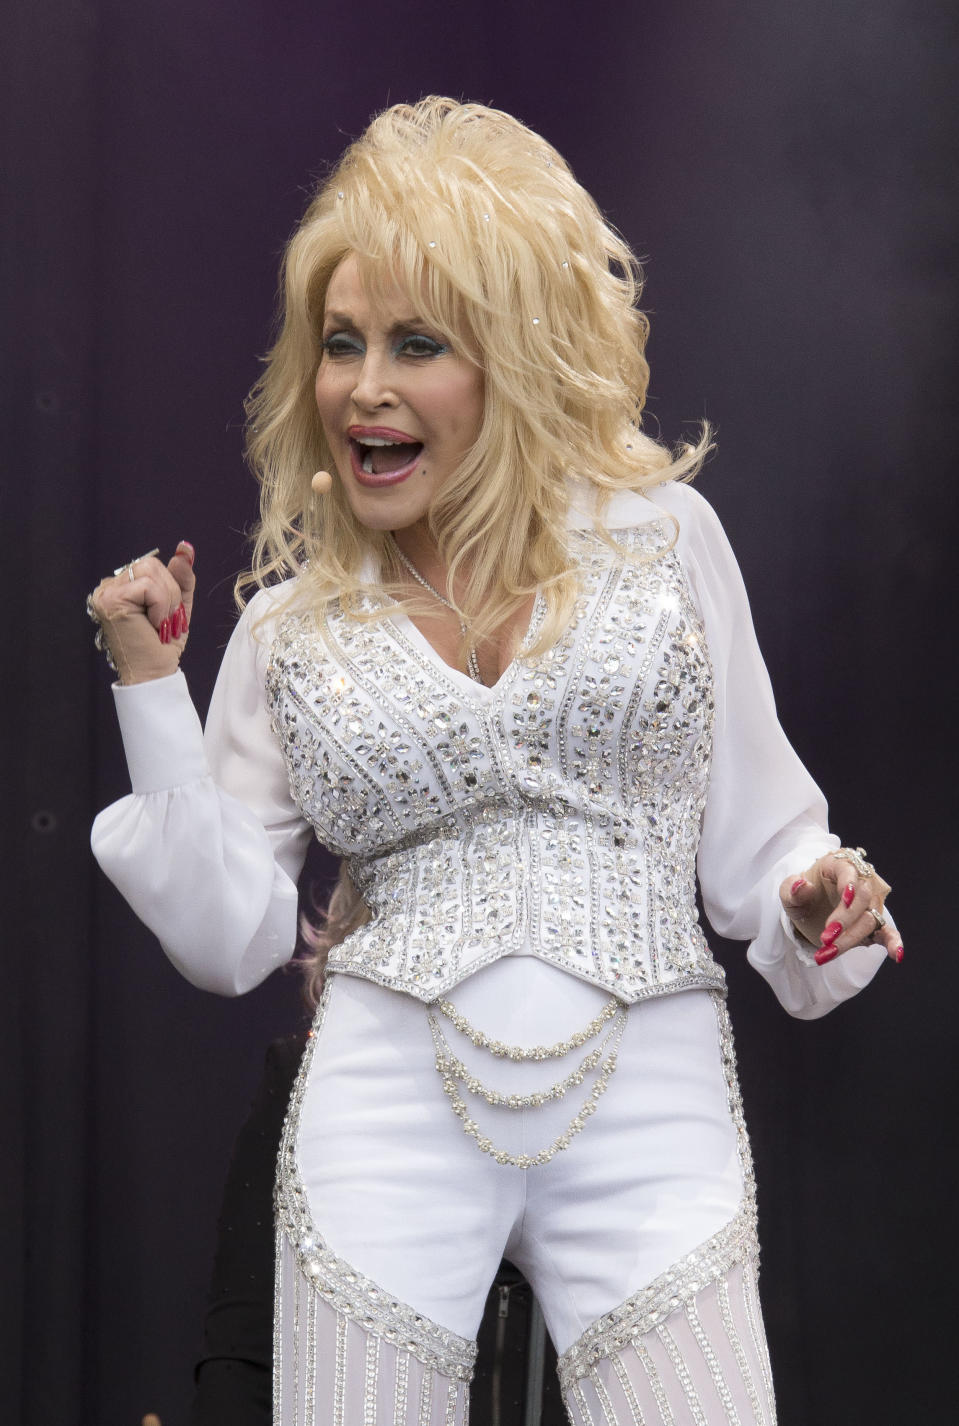 """FILE - Dolly Parton performs on the main Pyramid stage at Glastonbury music festival, England on June 29, 2014. Parton is asking Tennessee lawmakers to withdraw a bill that would erect a statue of her on the Capitol grounds in Nashville. In a statement released Thursday, Parton says that given current events, she doesn't think being put on a pedestal """"is appropriate at this time."""" (Photo by Joel Ryan/Invision/AP, File)"""